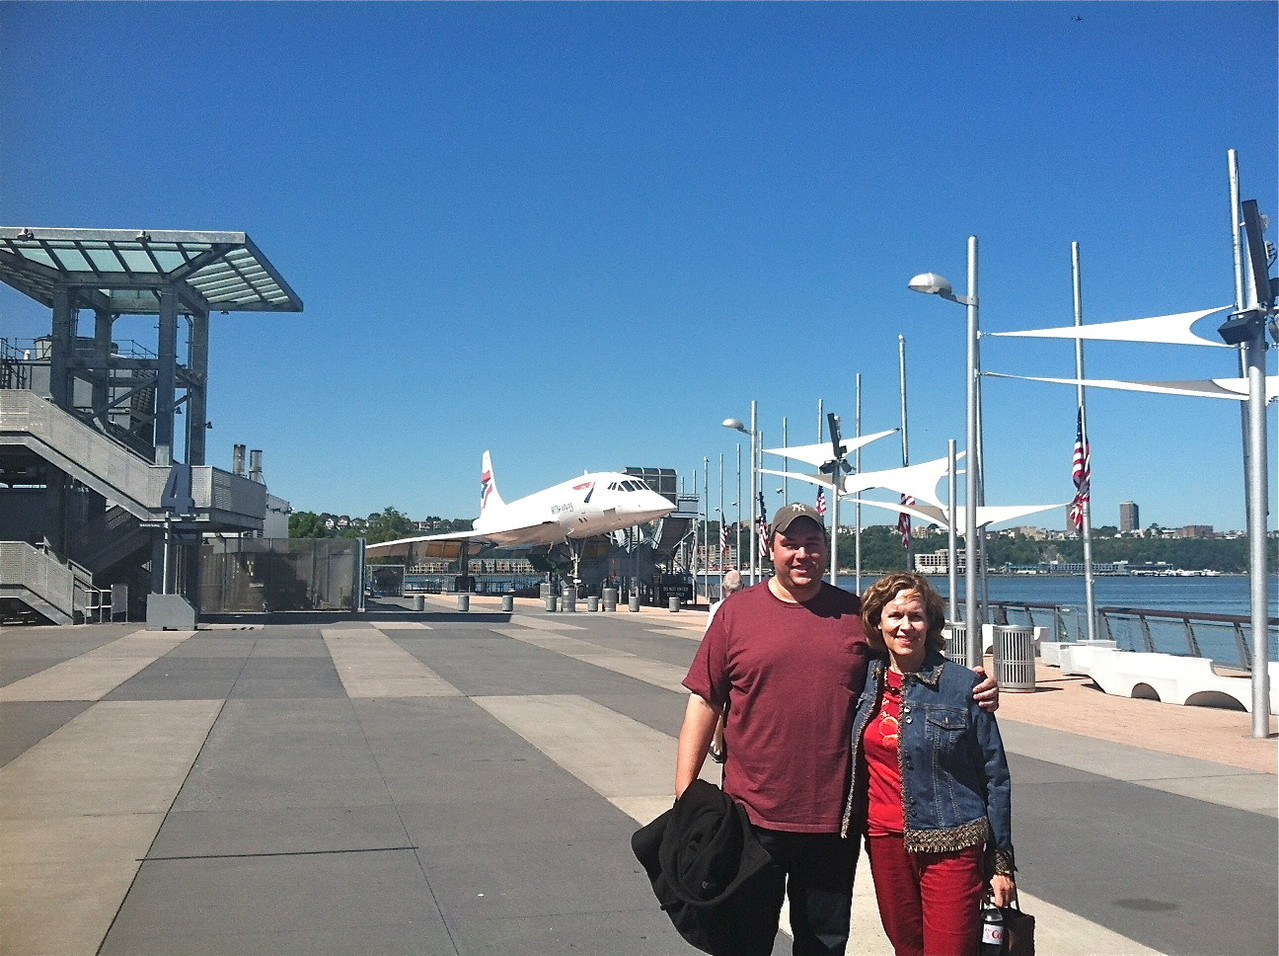 Greg & Lorraine at the Intrepid, NYC, Sept. 2013